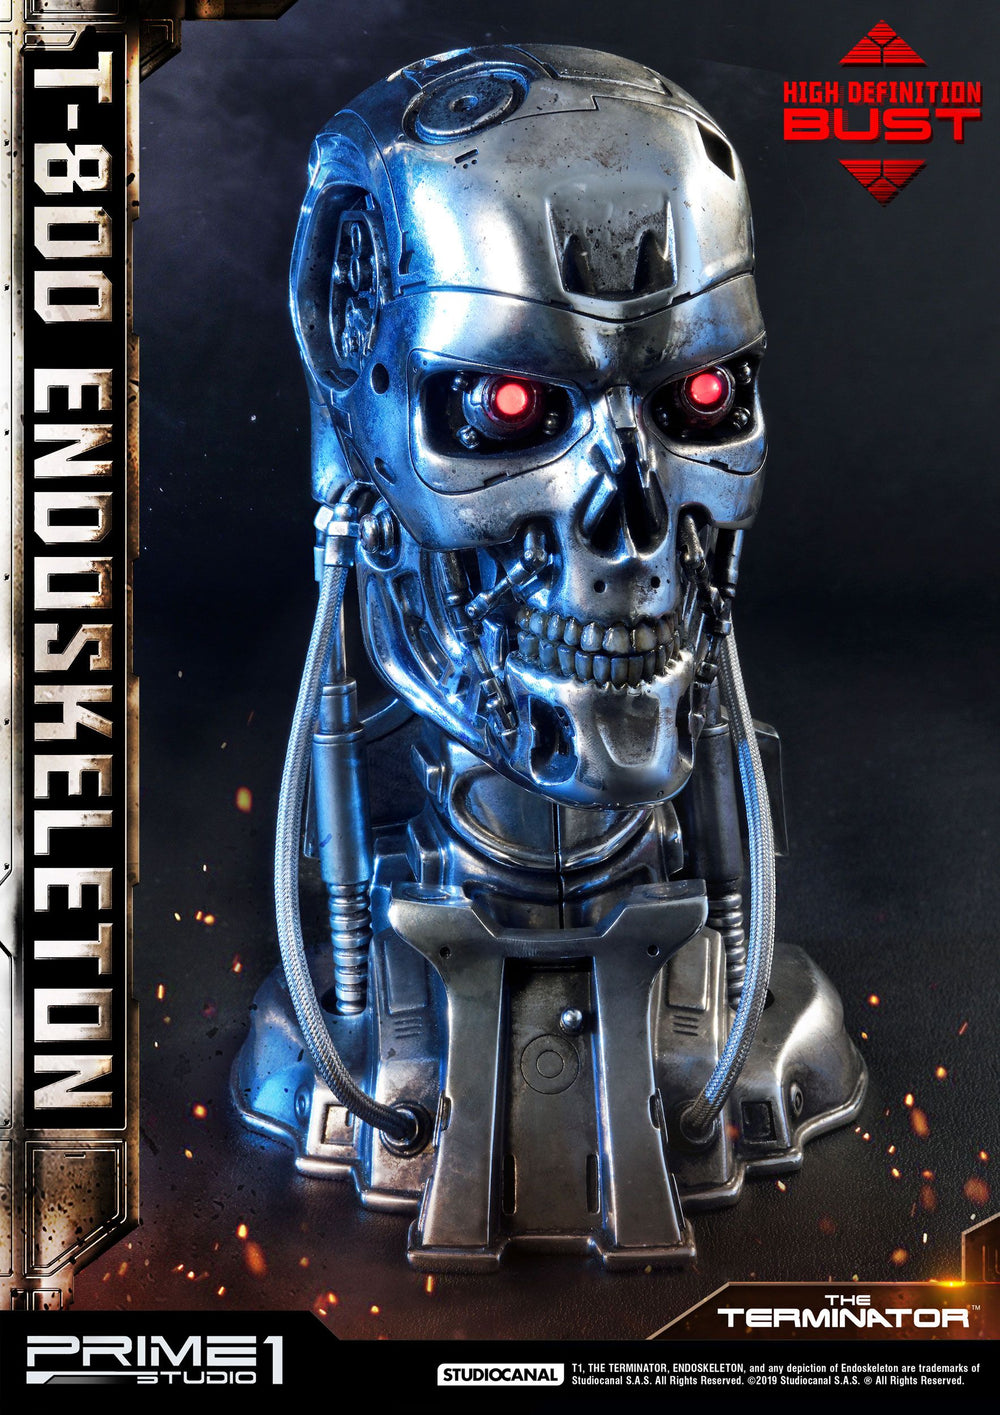 Terminator Action Figures, Toys & Statues UK – Movie Figures